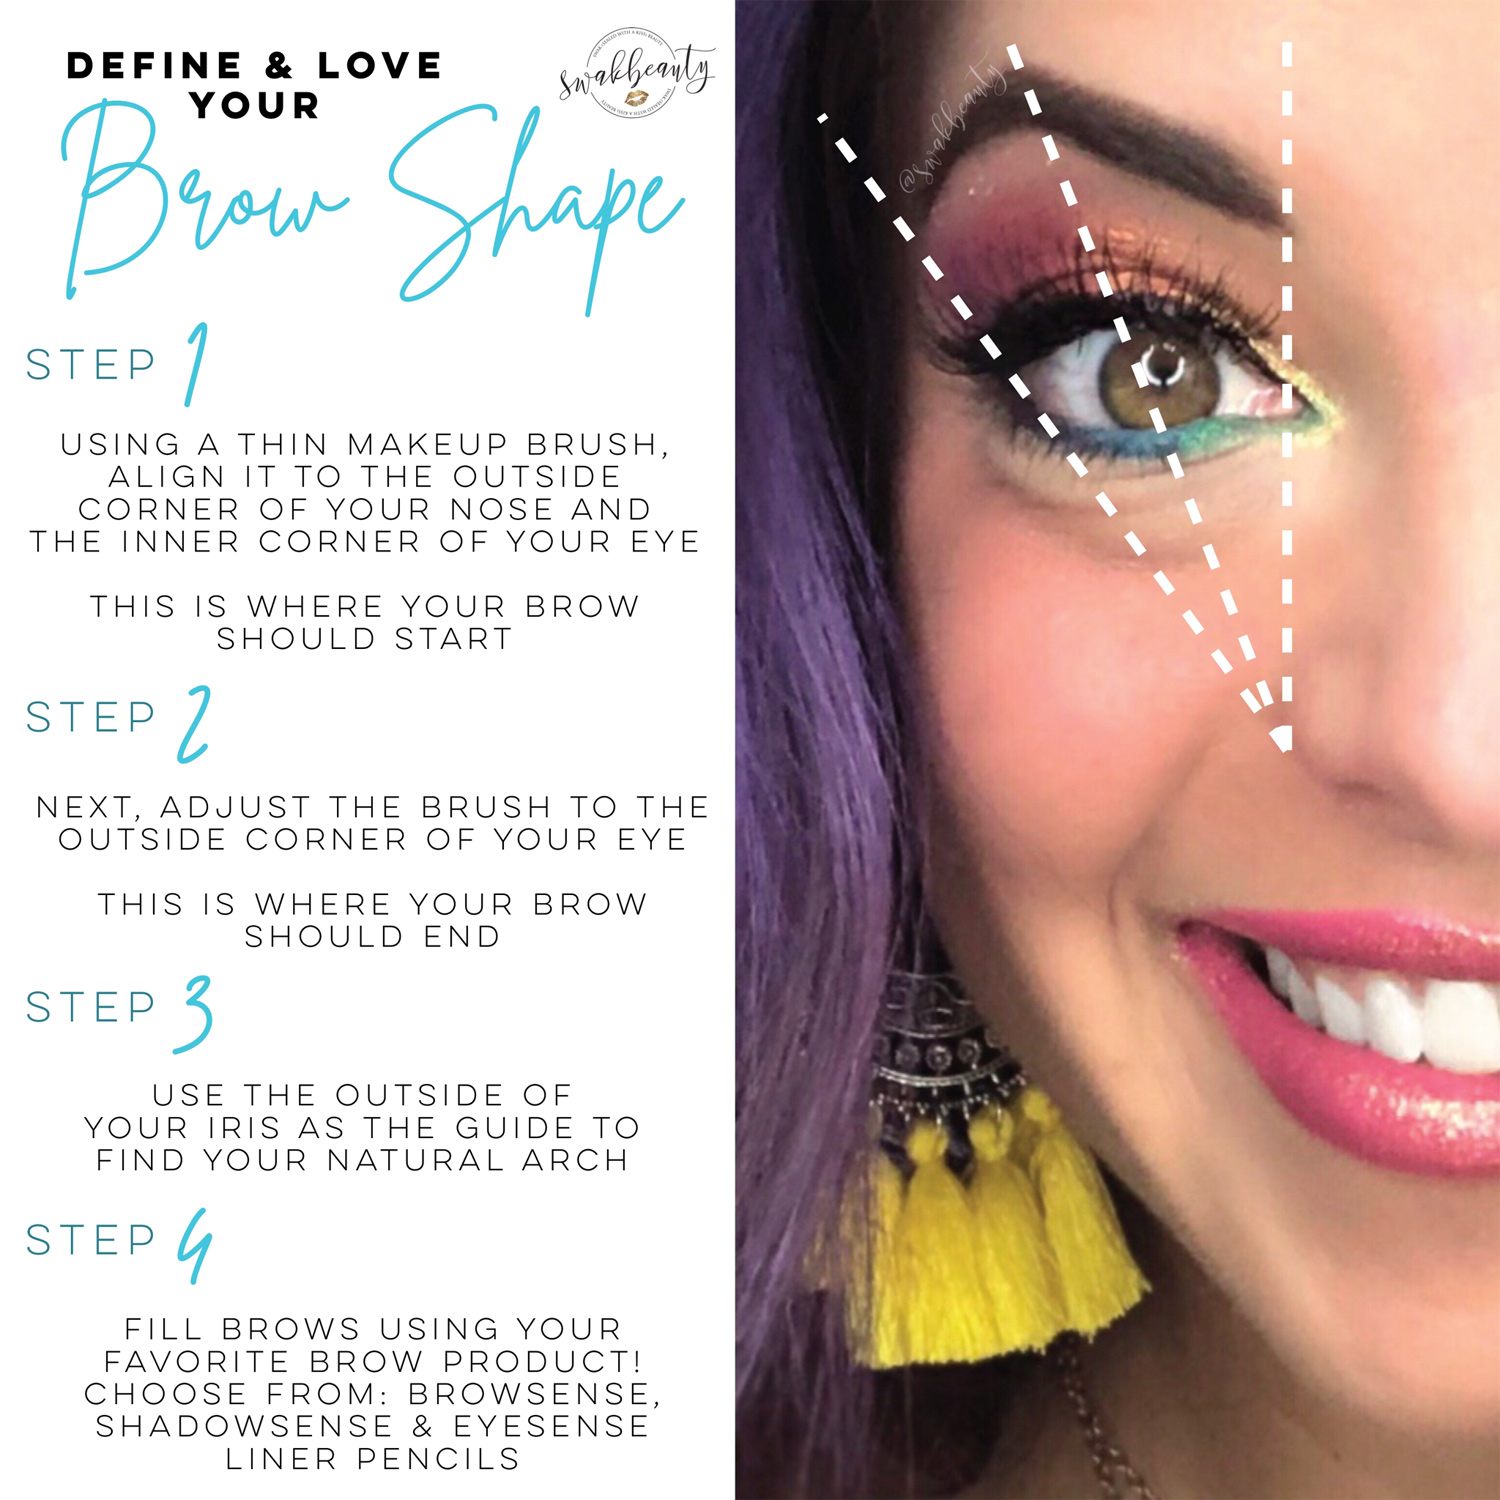 Define & Love Your Brows!